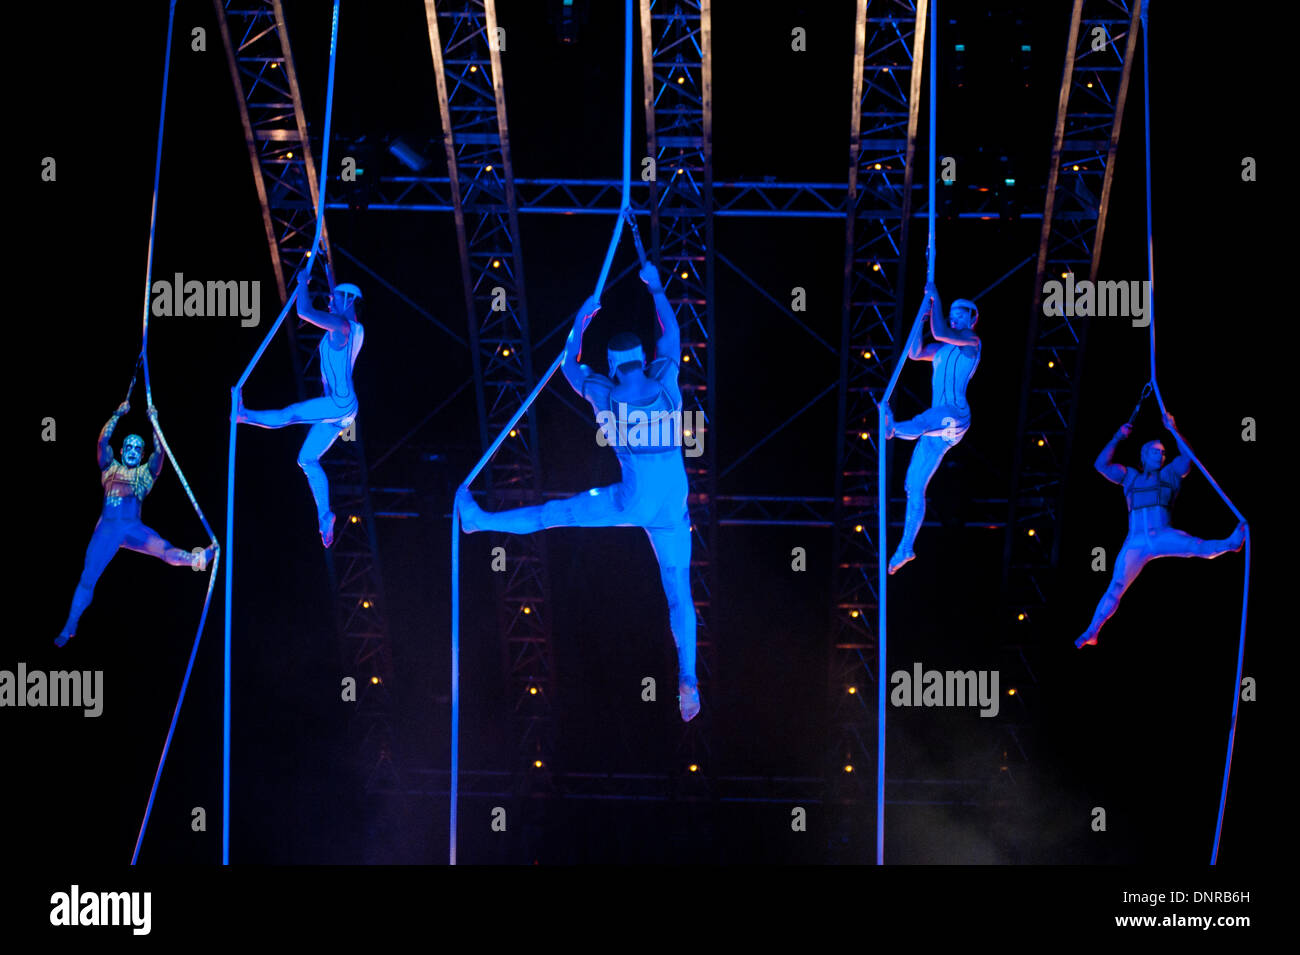 London, UK - 4 Janaury 2014: the Spanish webs act during the dress rehearsal of Quidam at the Royal Albert Hall. (available only for editorial coverage of the Production) Credit:  Piero Cruciatti/Alamy Live News - Stock Image